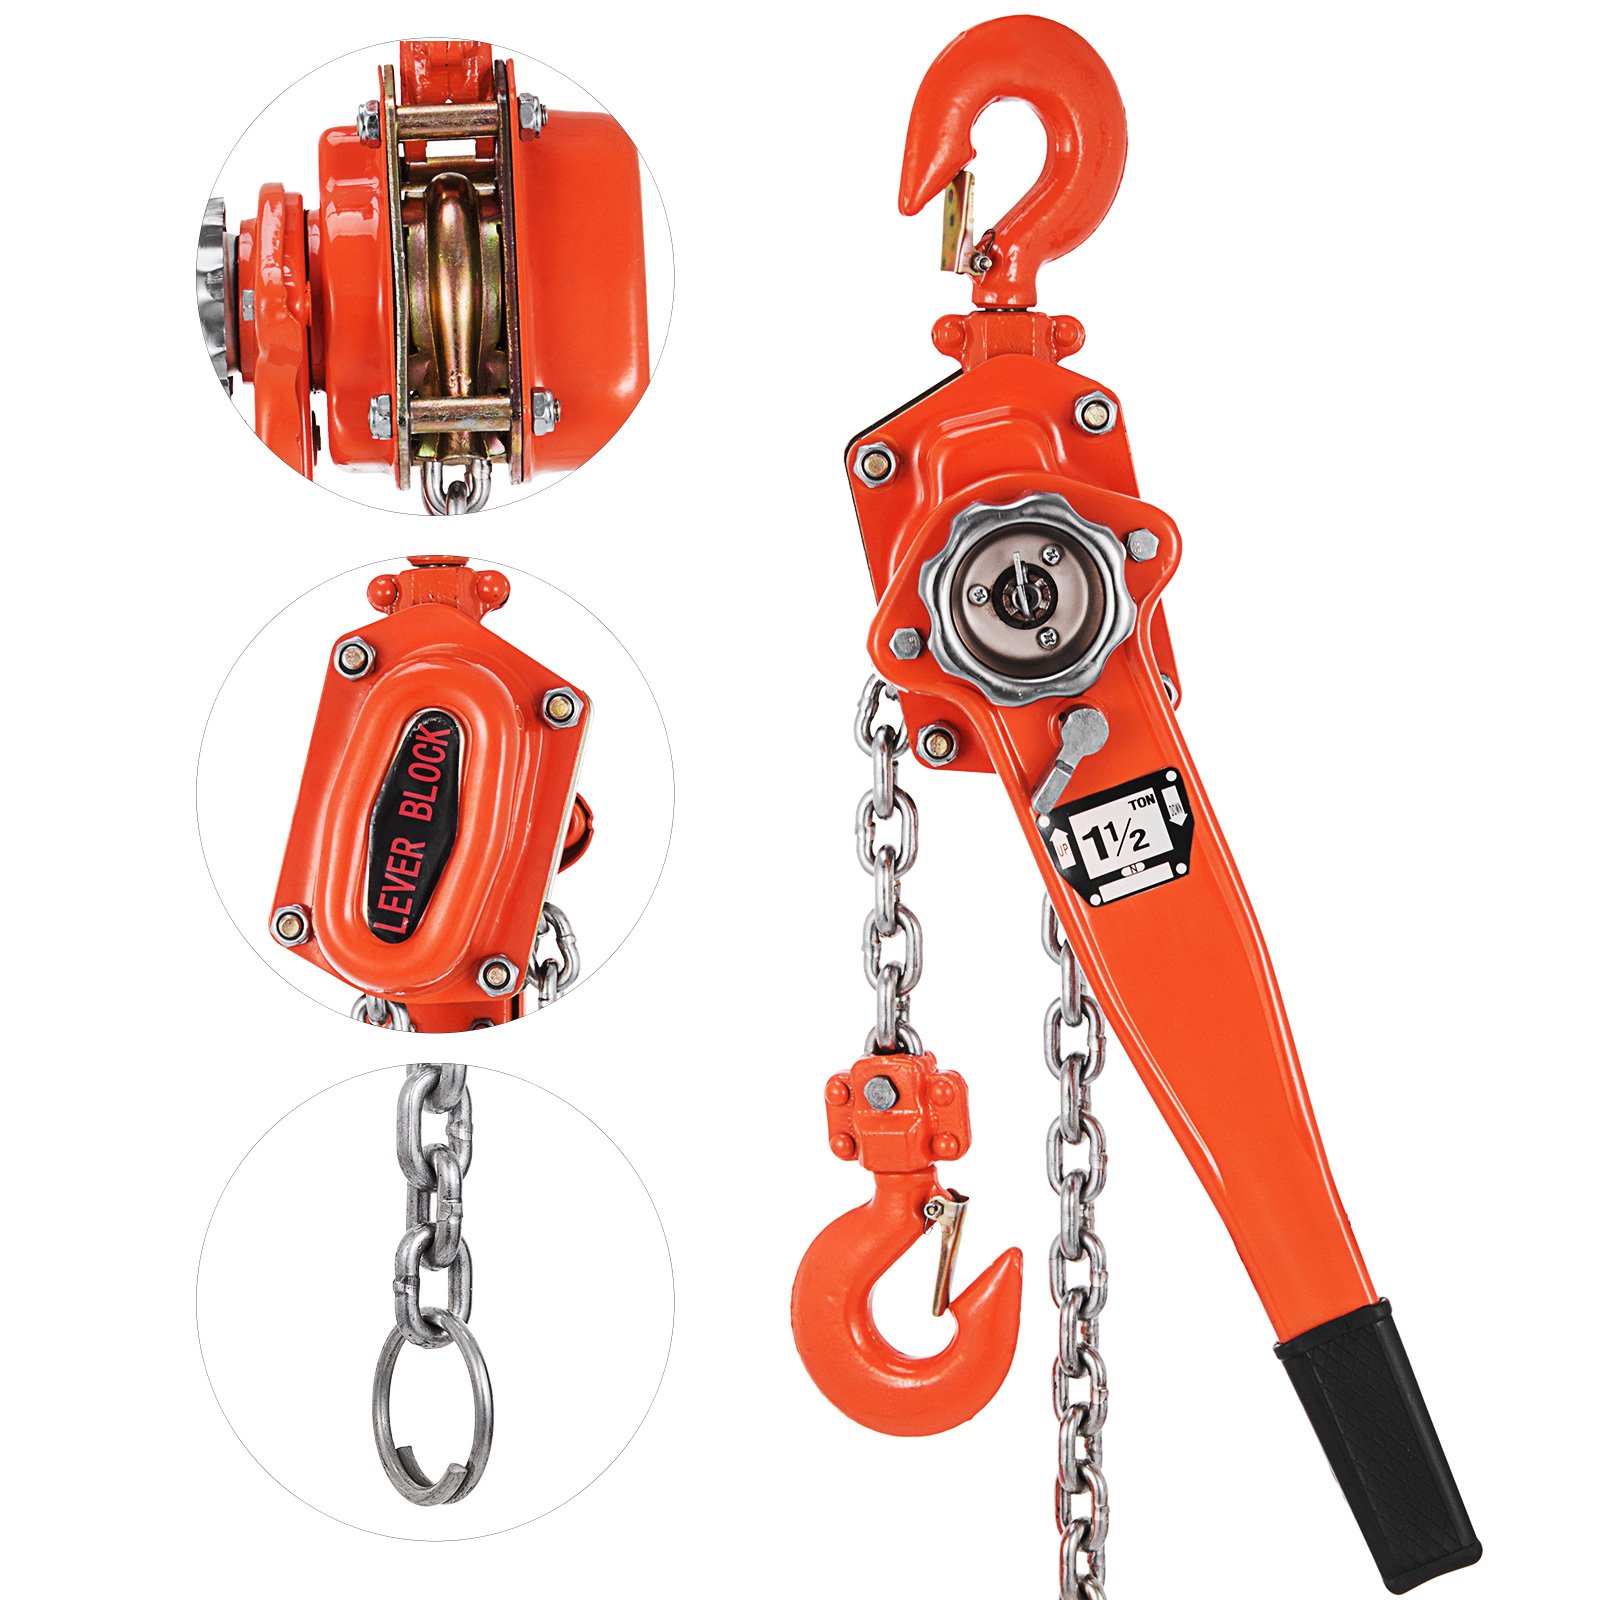 15ton 5 10 20ft Lever Hoist 1500kg Chain Manual Hand Ratchet Winch 1 Ton Cm Wiring Diagram Image Is Loading 5ton